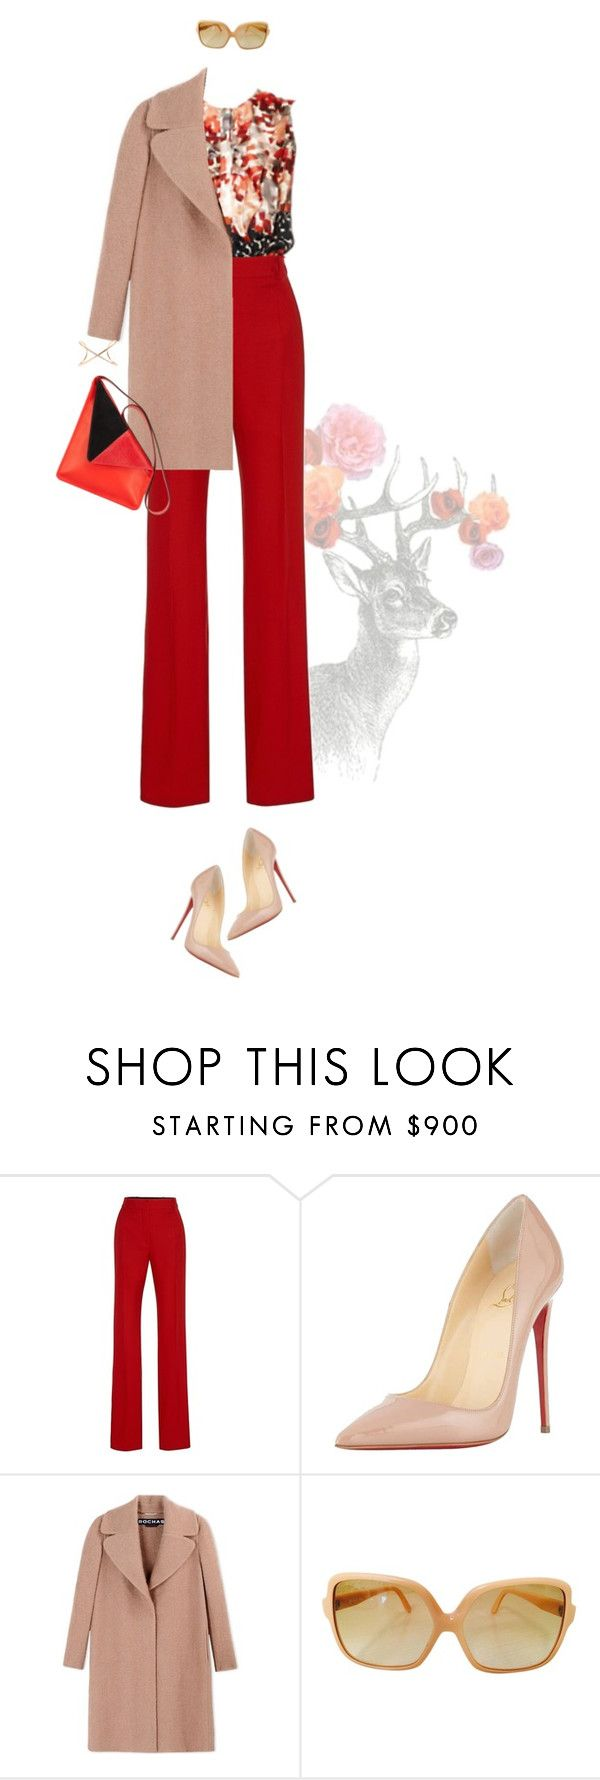 """Untitled #2000"" by land ❤ liked on Polyvore featuring Jonathan Saunders, Carolina Herrera, Christian Louboutin, Rochas, Hermès and Roberto Marroni"